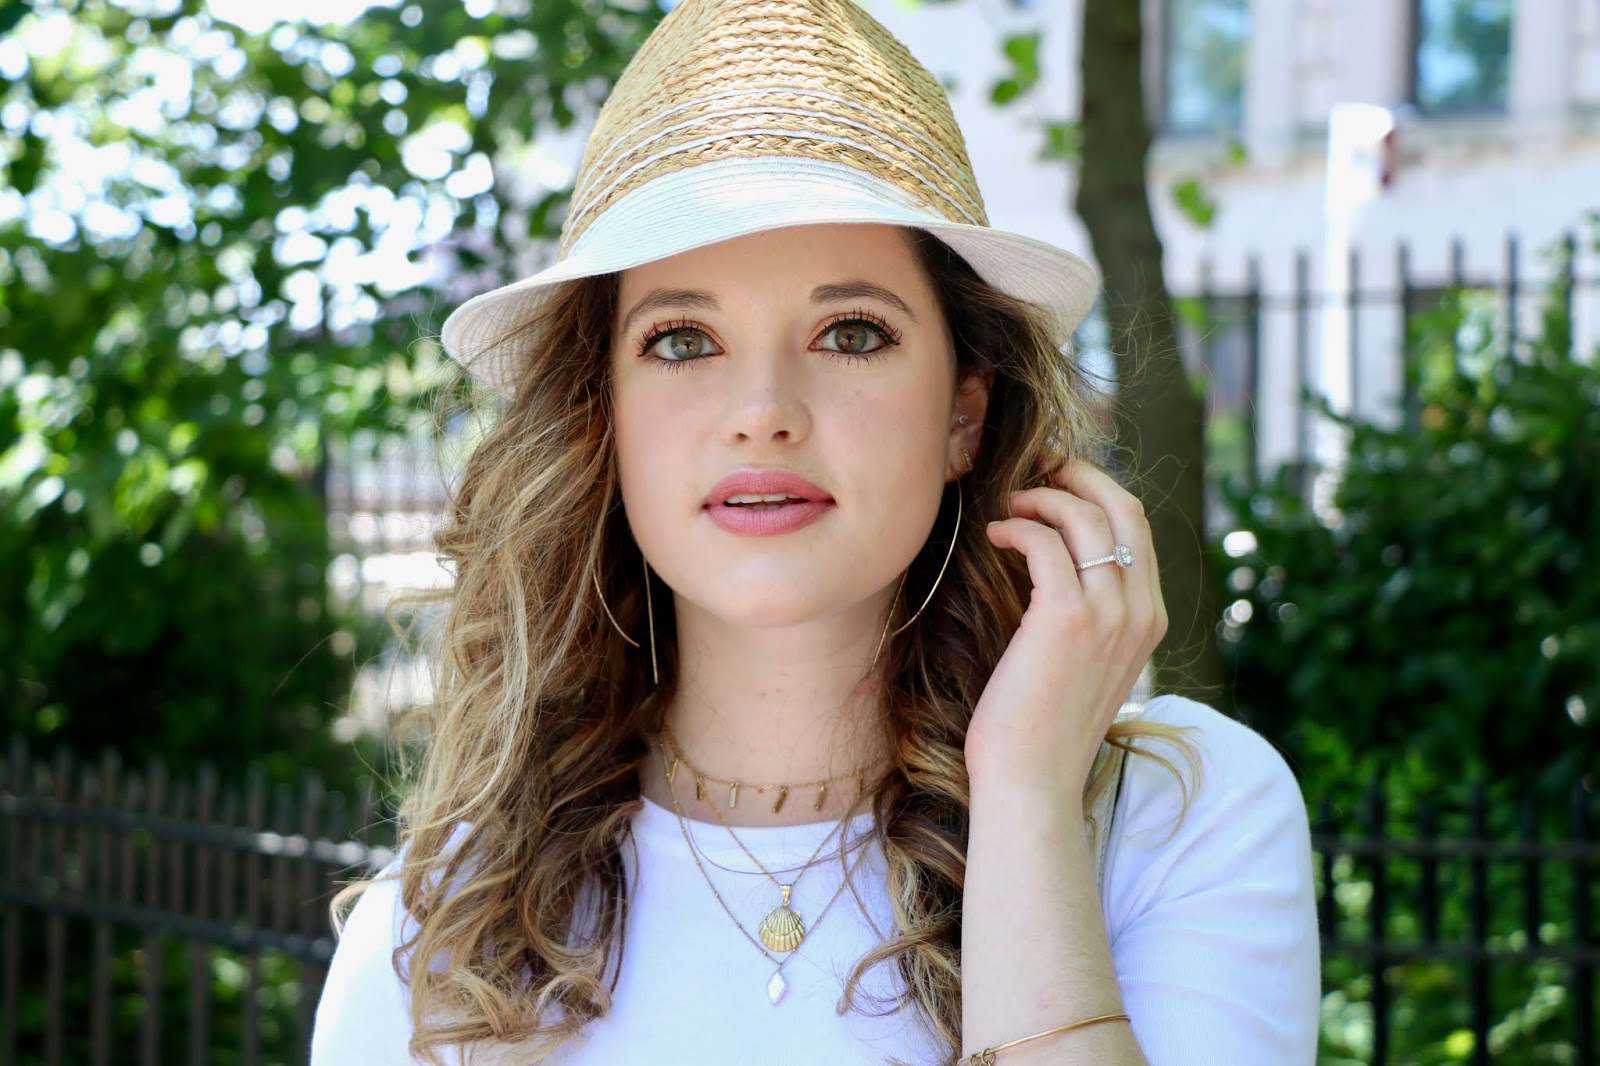 Nyc fashion blogger Kathleen Harper's natural beauty makeup look for spring or summer.